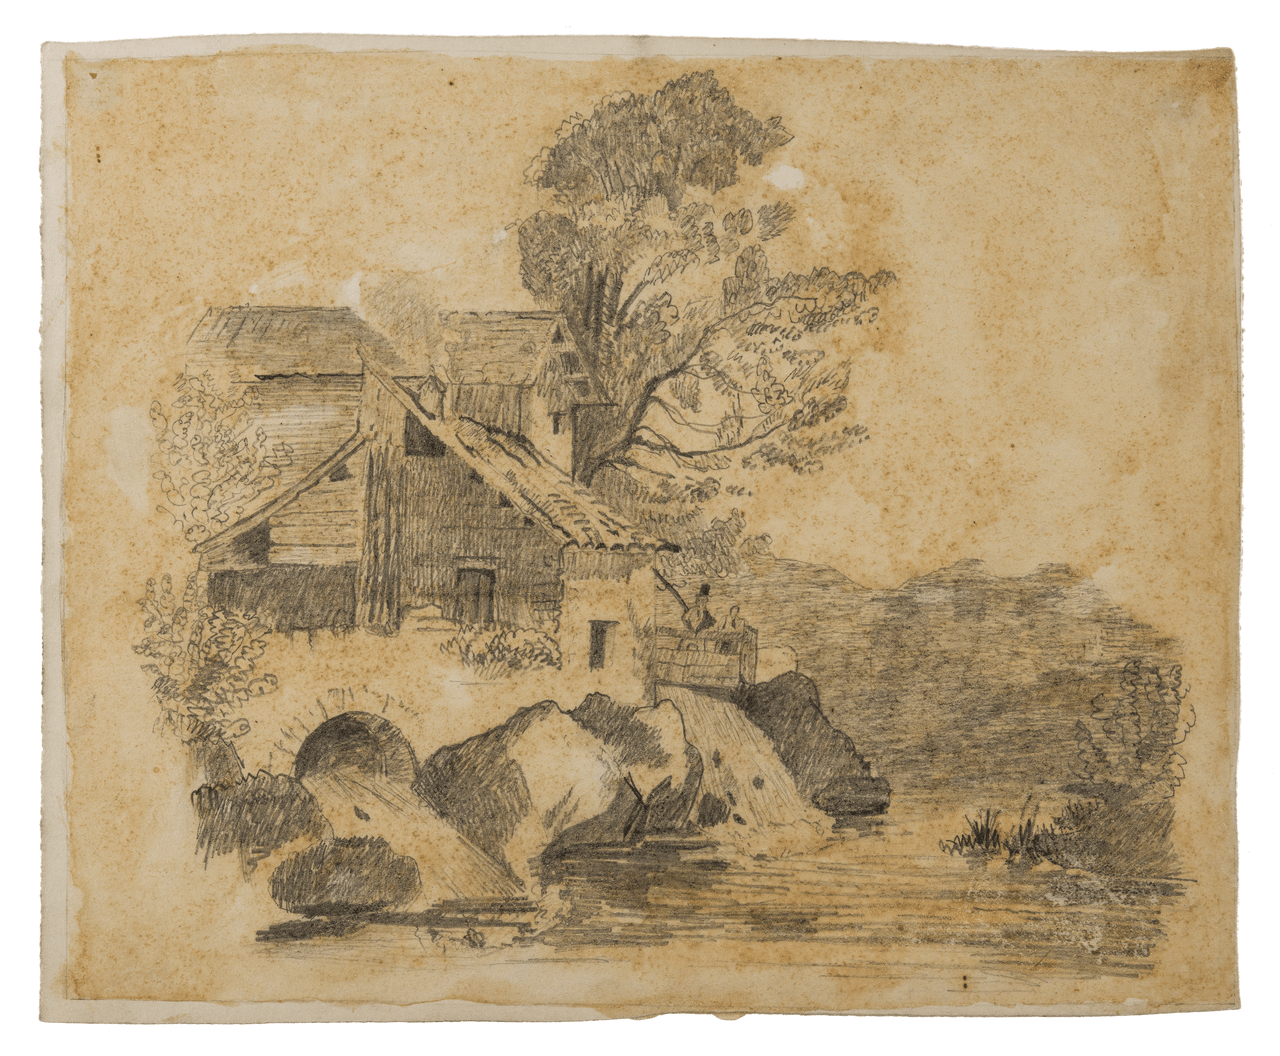 A 19th Century English Pencil Landscape Sketch